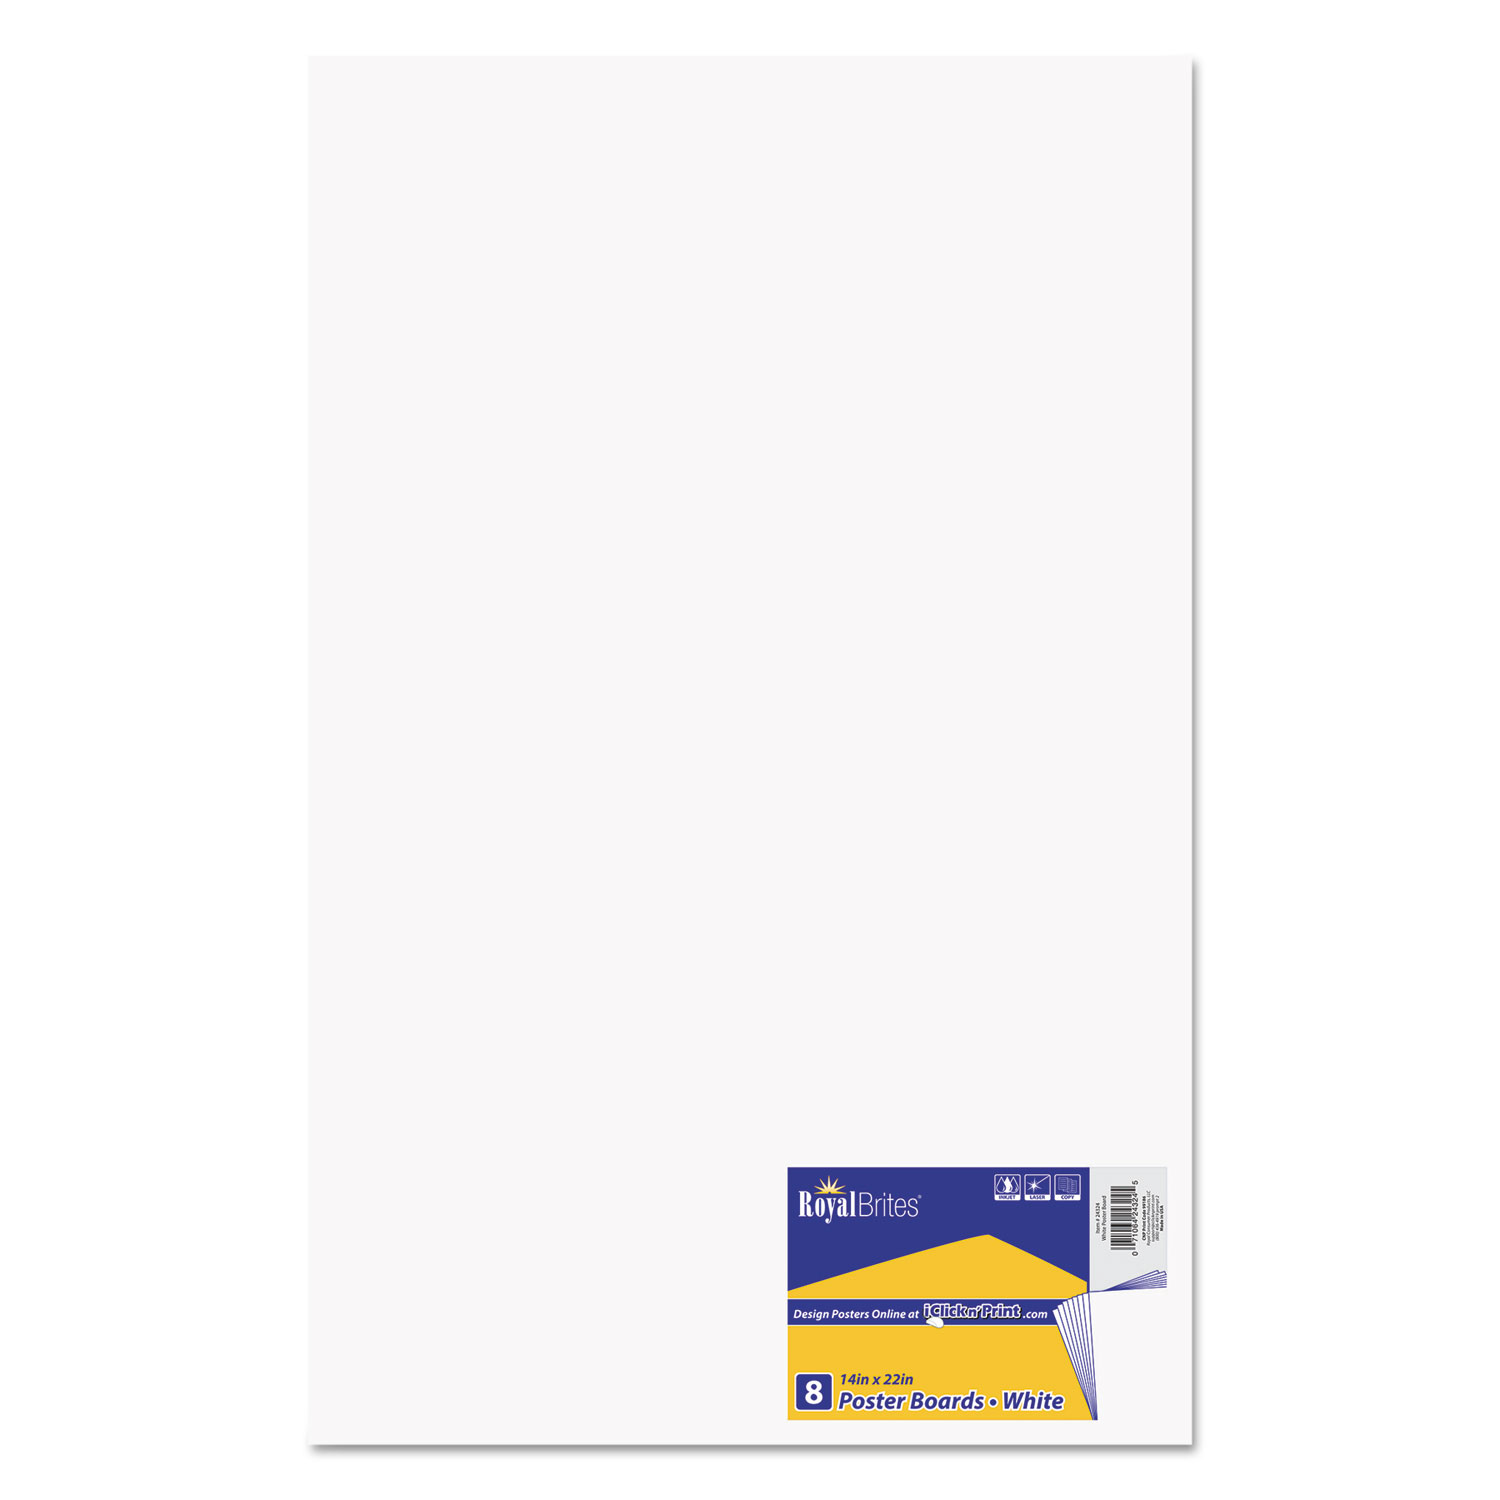 Premium Coated Poster Board By Royal Brites Geo24324